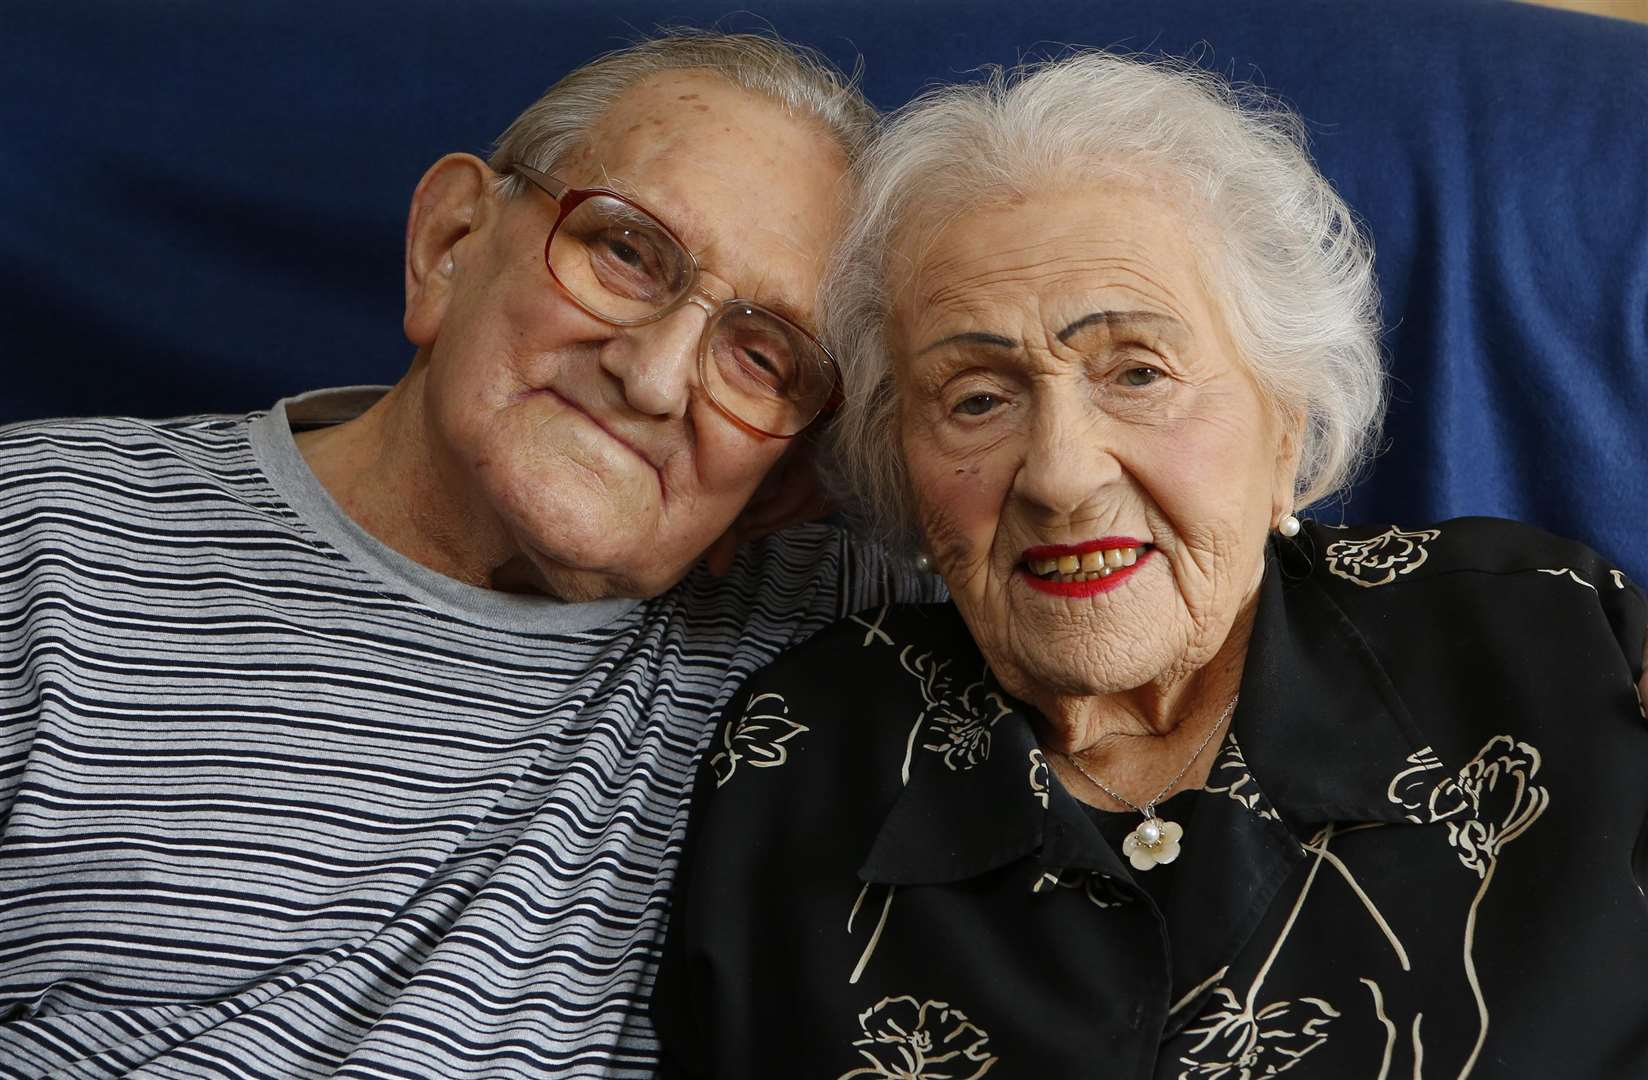 James and Vera Brown, 94 and 95, are celebrating their 70th wedding anniversary